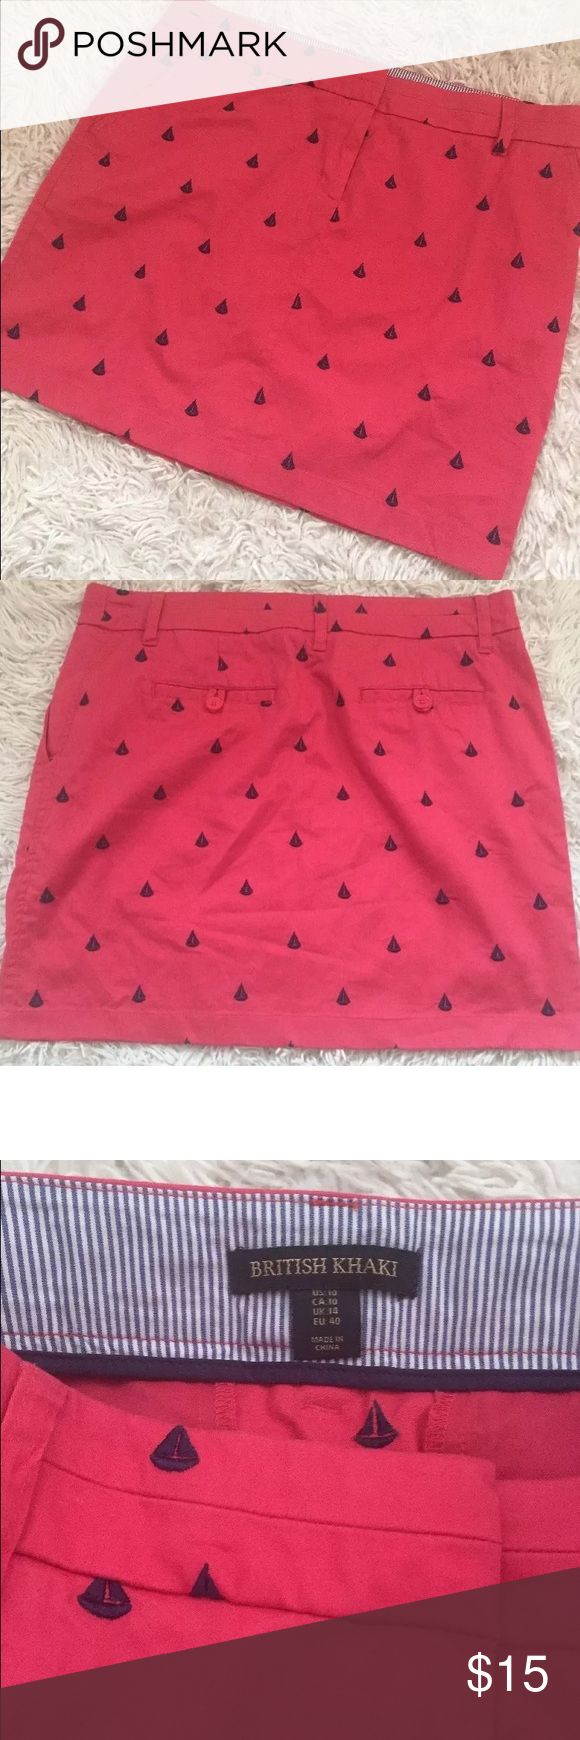 """British Khaki Skirt Women's British Khaki Sailboat Embroidered Skirt. Pink with blue sailboats. Side and back pockets. Belt Loops 97% Cotton 3% Spandex Women's Size 10. Measure 17"""" across waist laying flat. Length is 17"""" long from top of waist to bottom. British Khaki Skirts Pencil"""